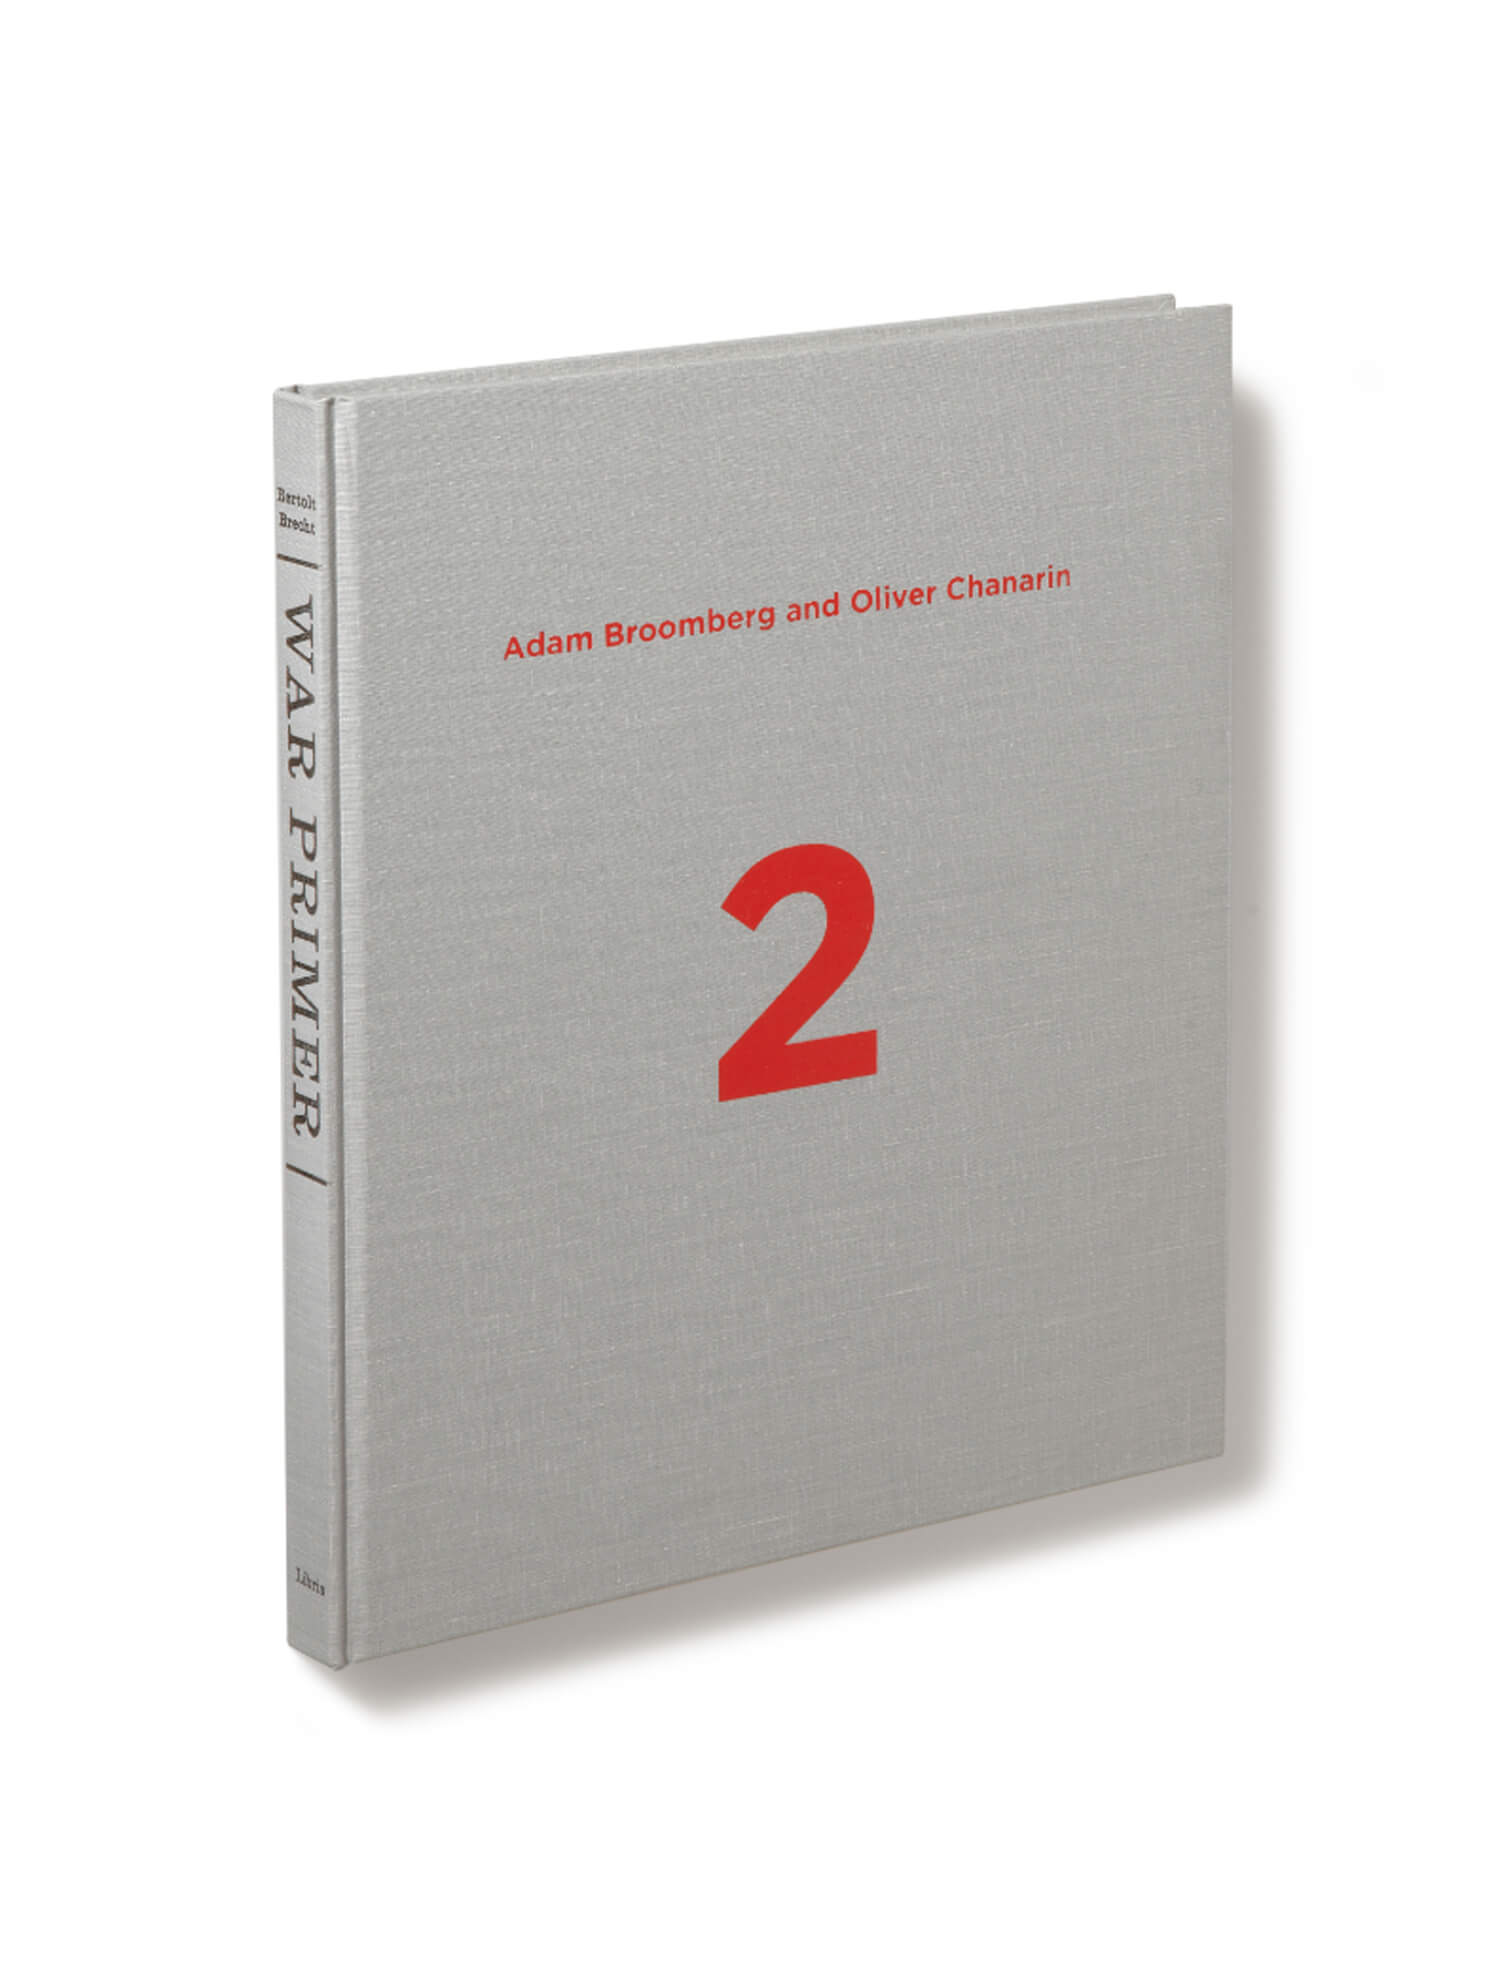 War Primer 2, Adam Broomberg & Oliver Chanarin, 2011, hardback book (MACK)